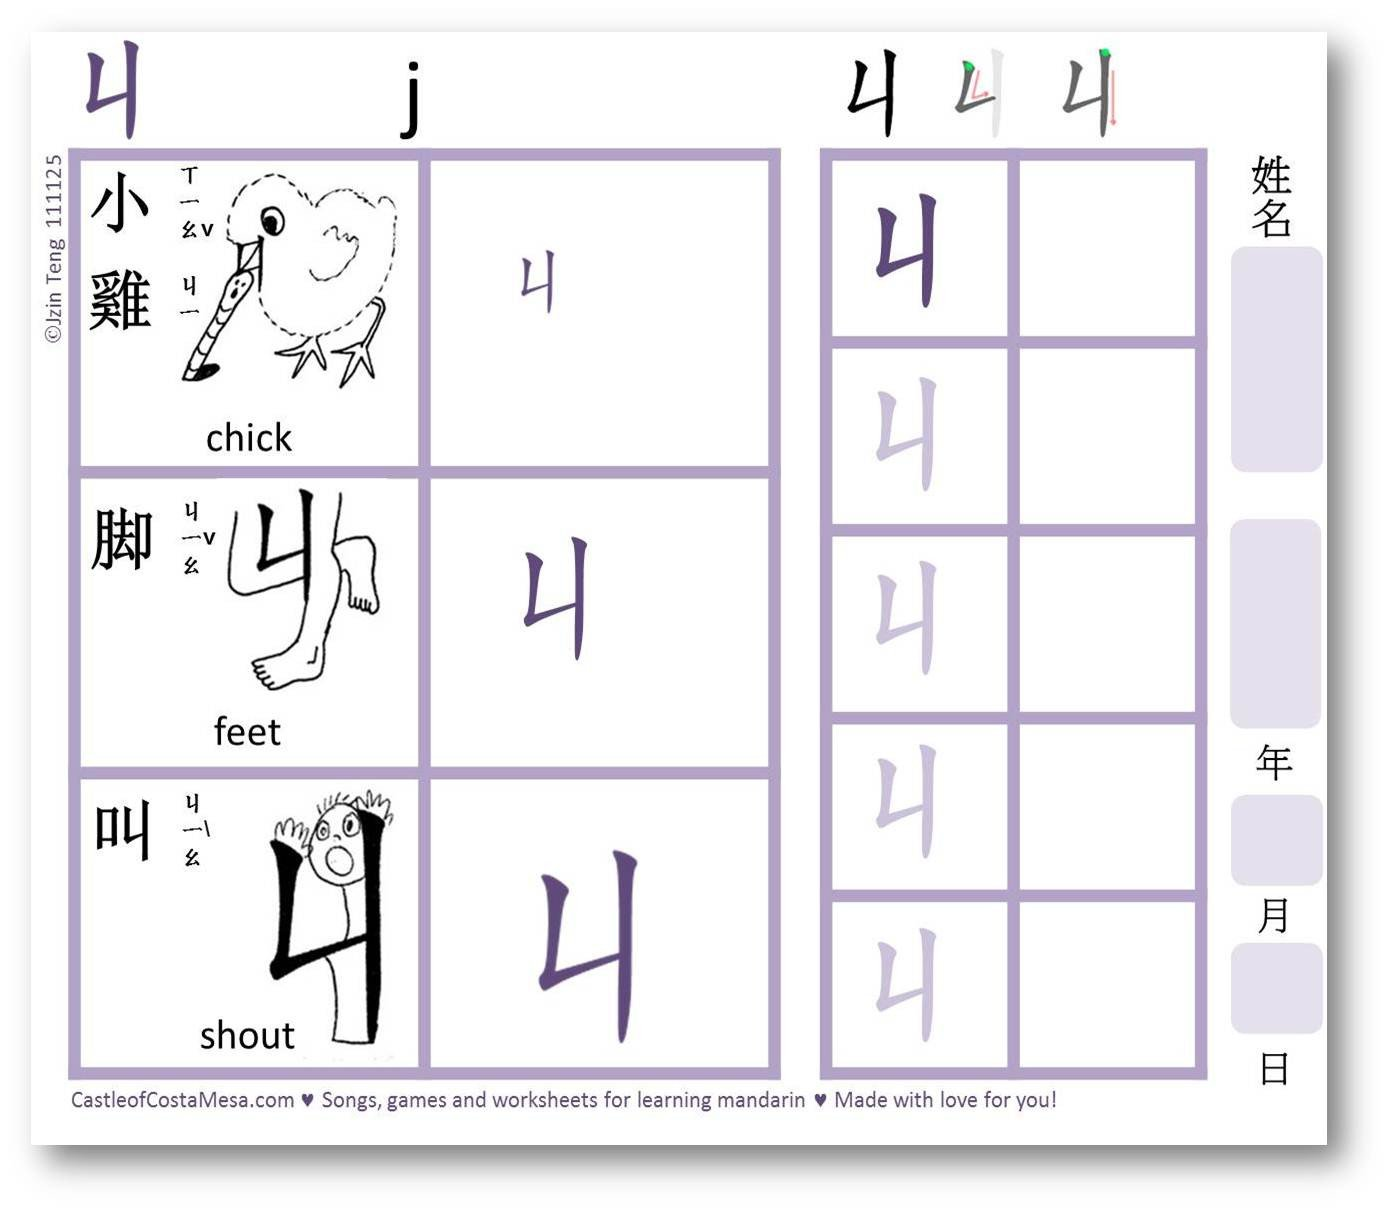 Learning Chinese Worksheets Bopomofo ㄅㄆㄇㄈ Mnemonic Worksheets for Children 注音符號